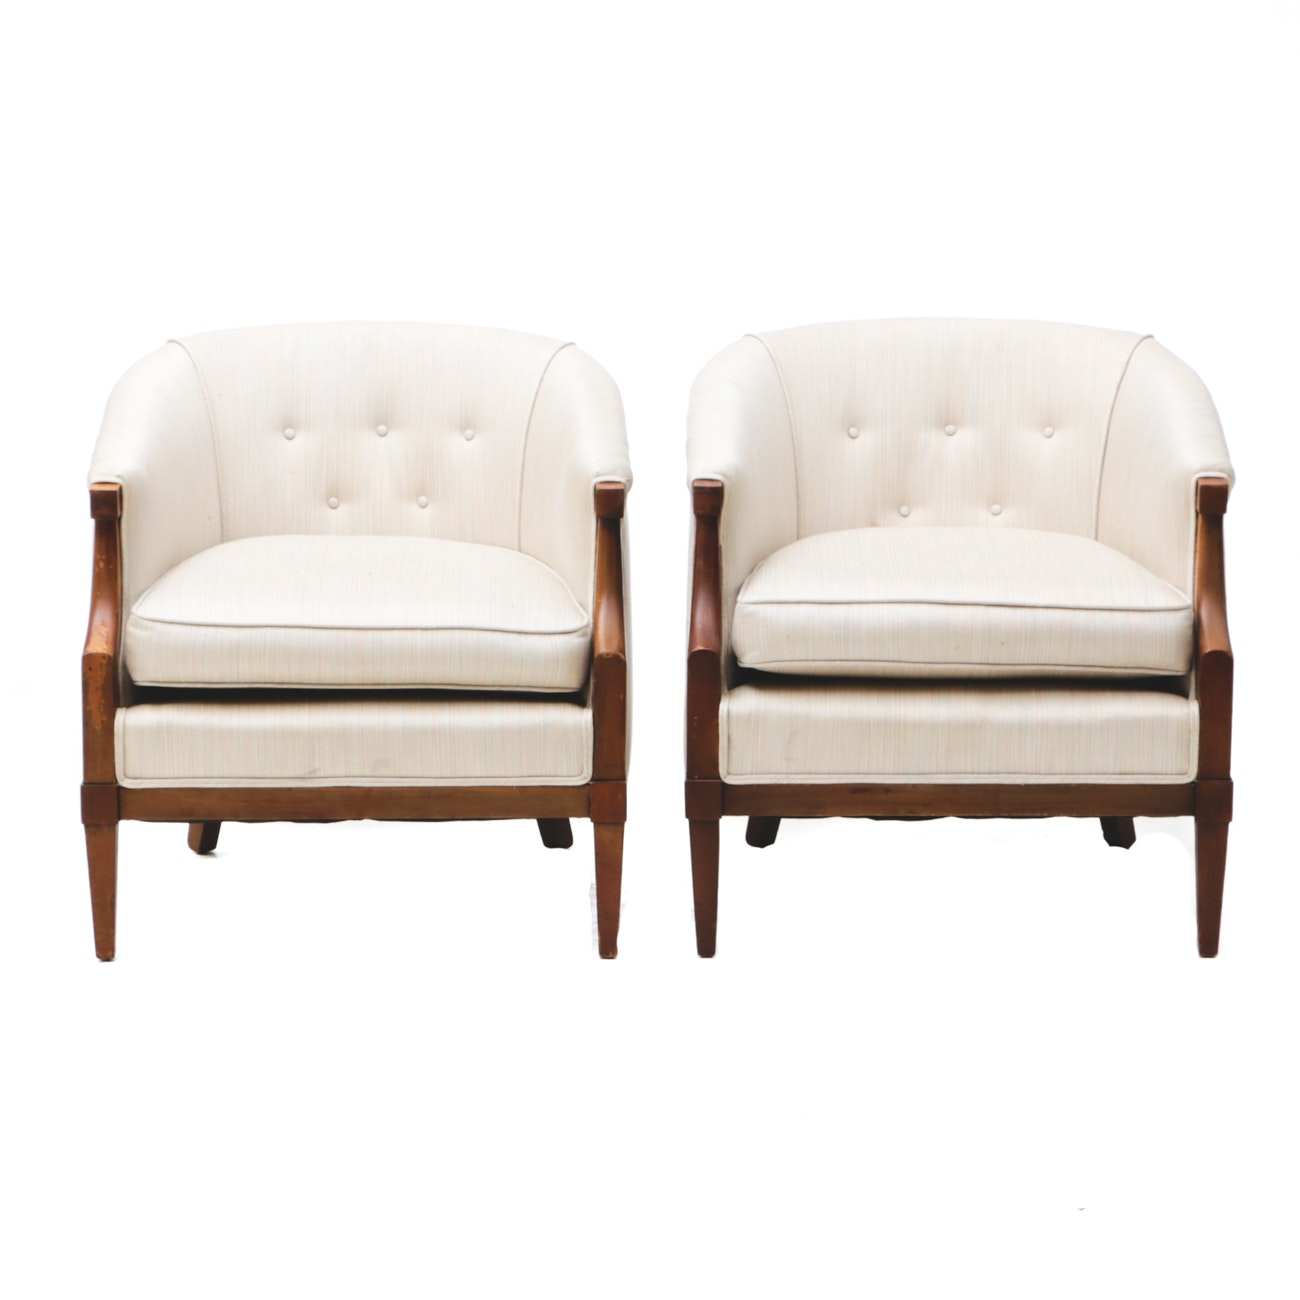 Pair of Mid-Century Tub Chairs